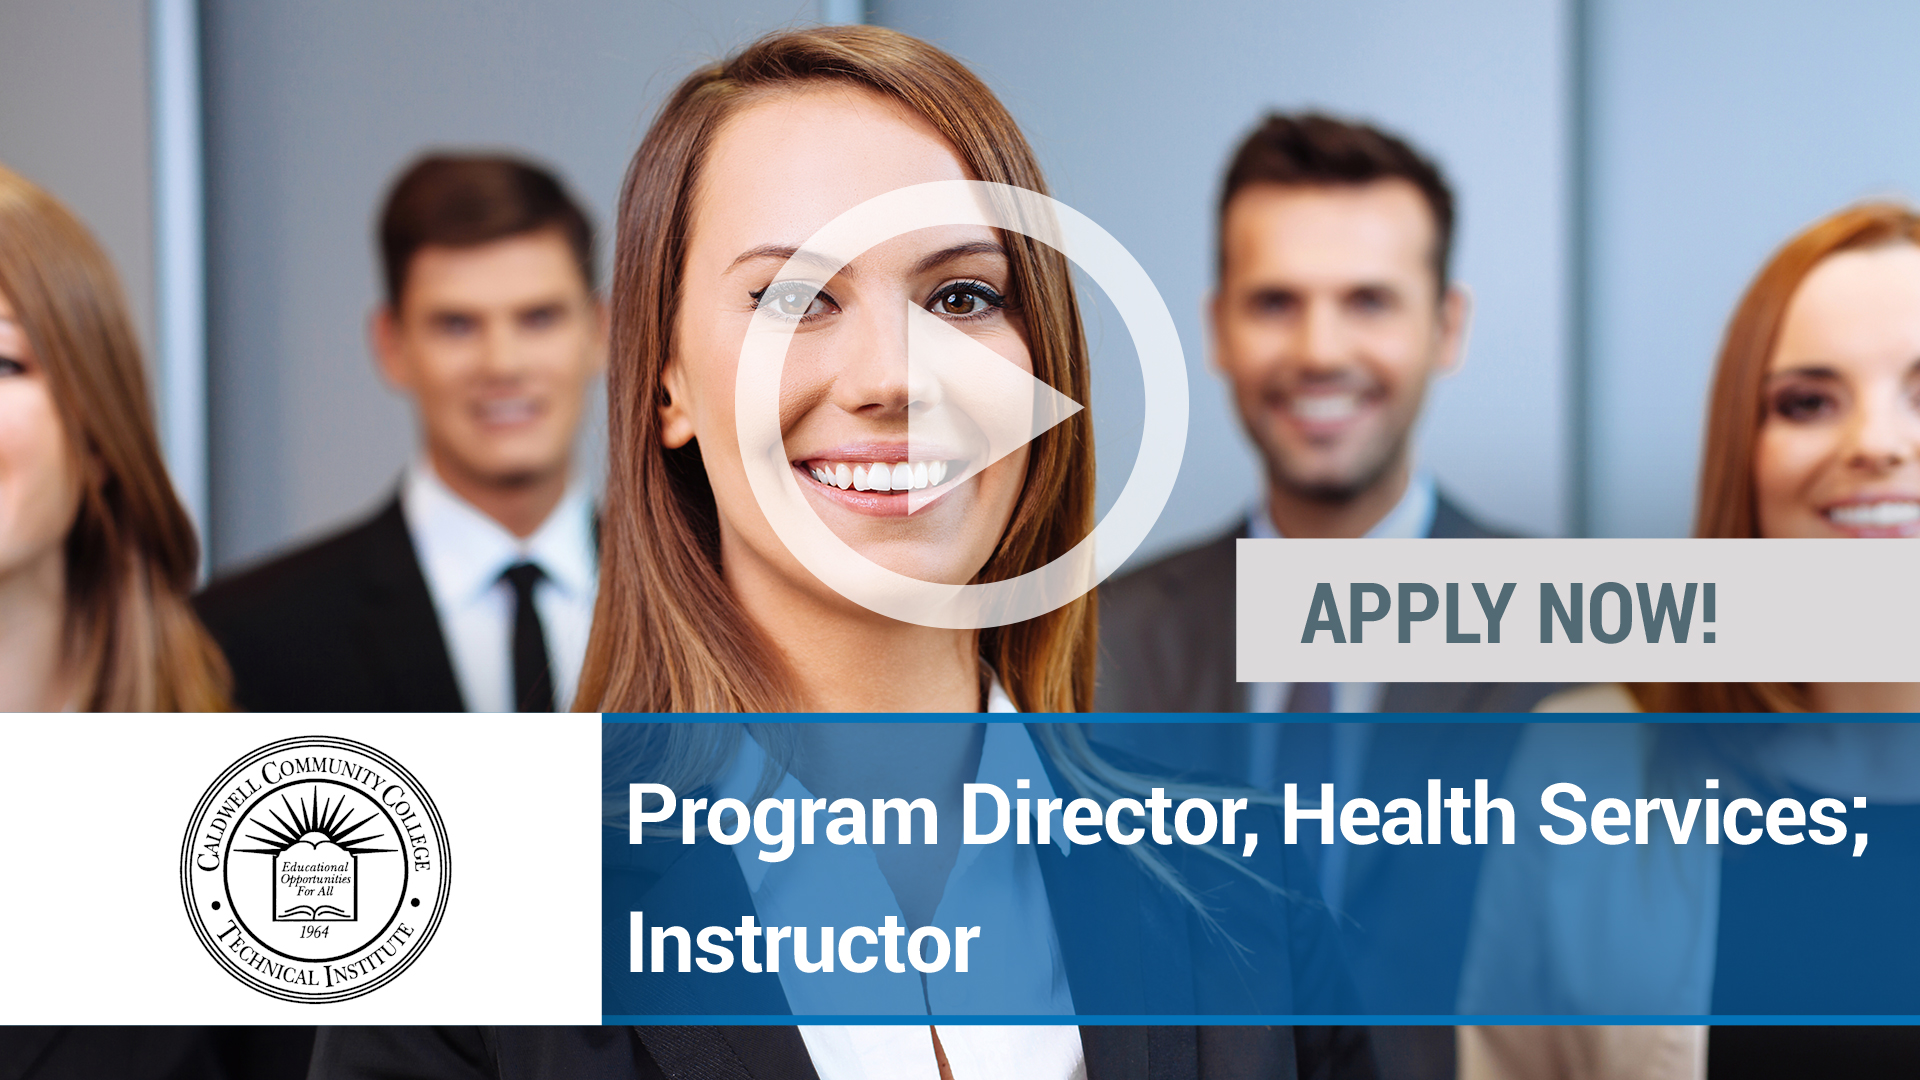 Watch our careers video for available job opening Program Director, Health Services; Instructor in Charlotte, NC